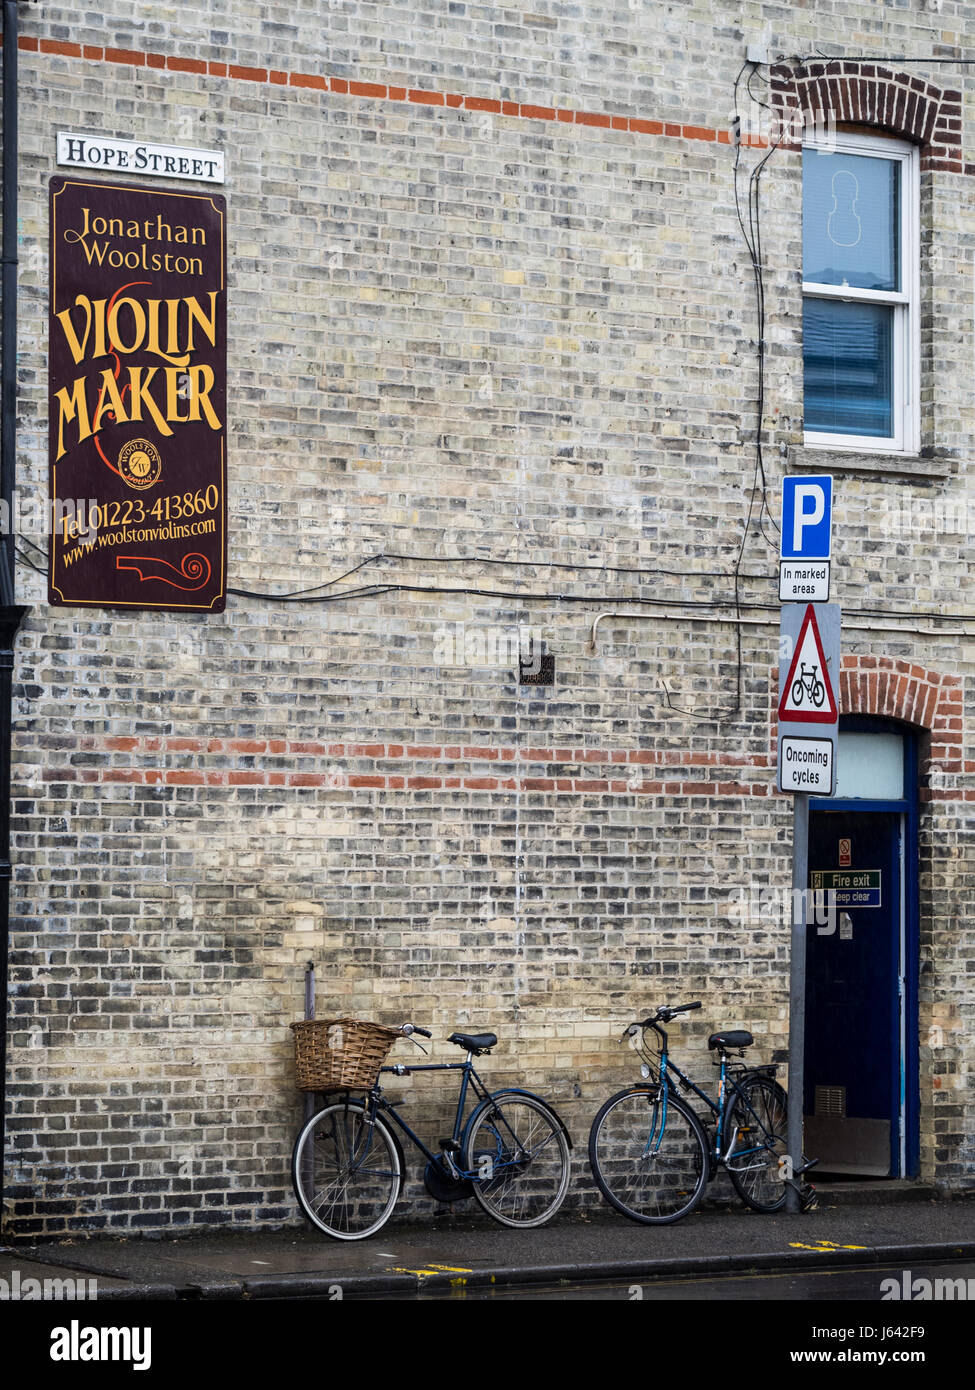 Signs outside the workshop of Jonathan Woolston, Violin